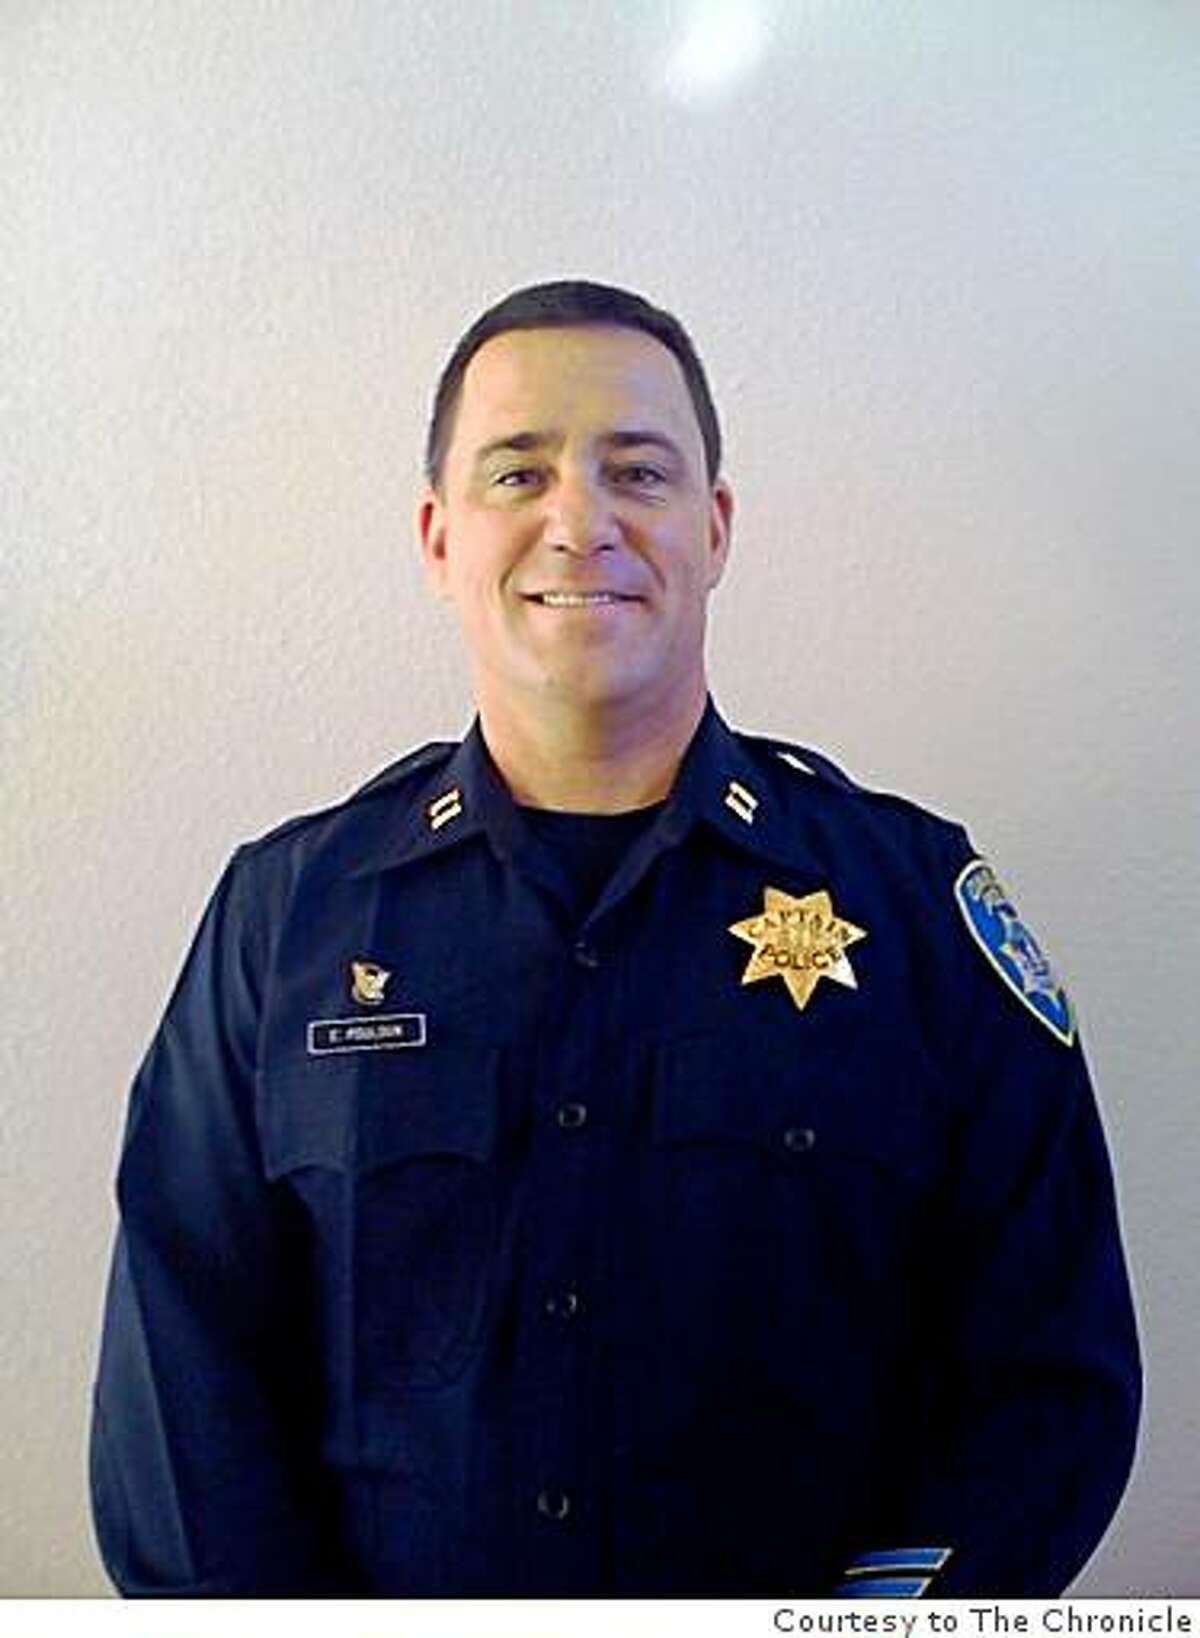 Oakland police Capt. Ed Poulson, whose conduct during and after a 2000 arrest in which a drug suspect died is under investigation by the FBI.